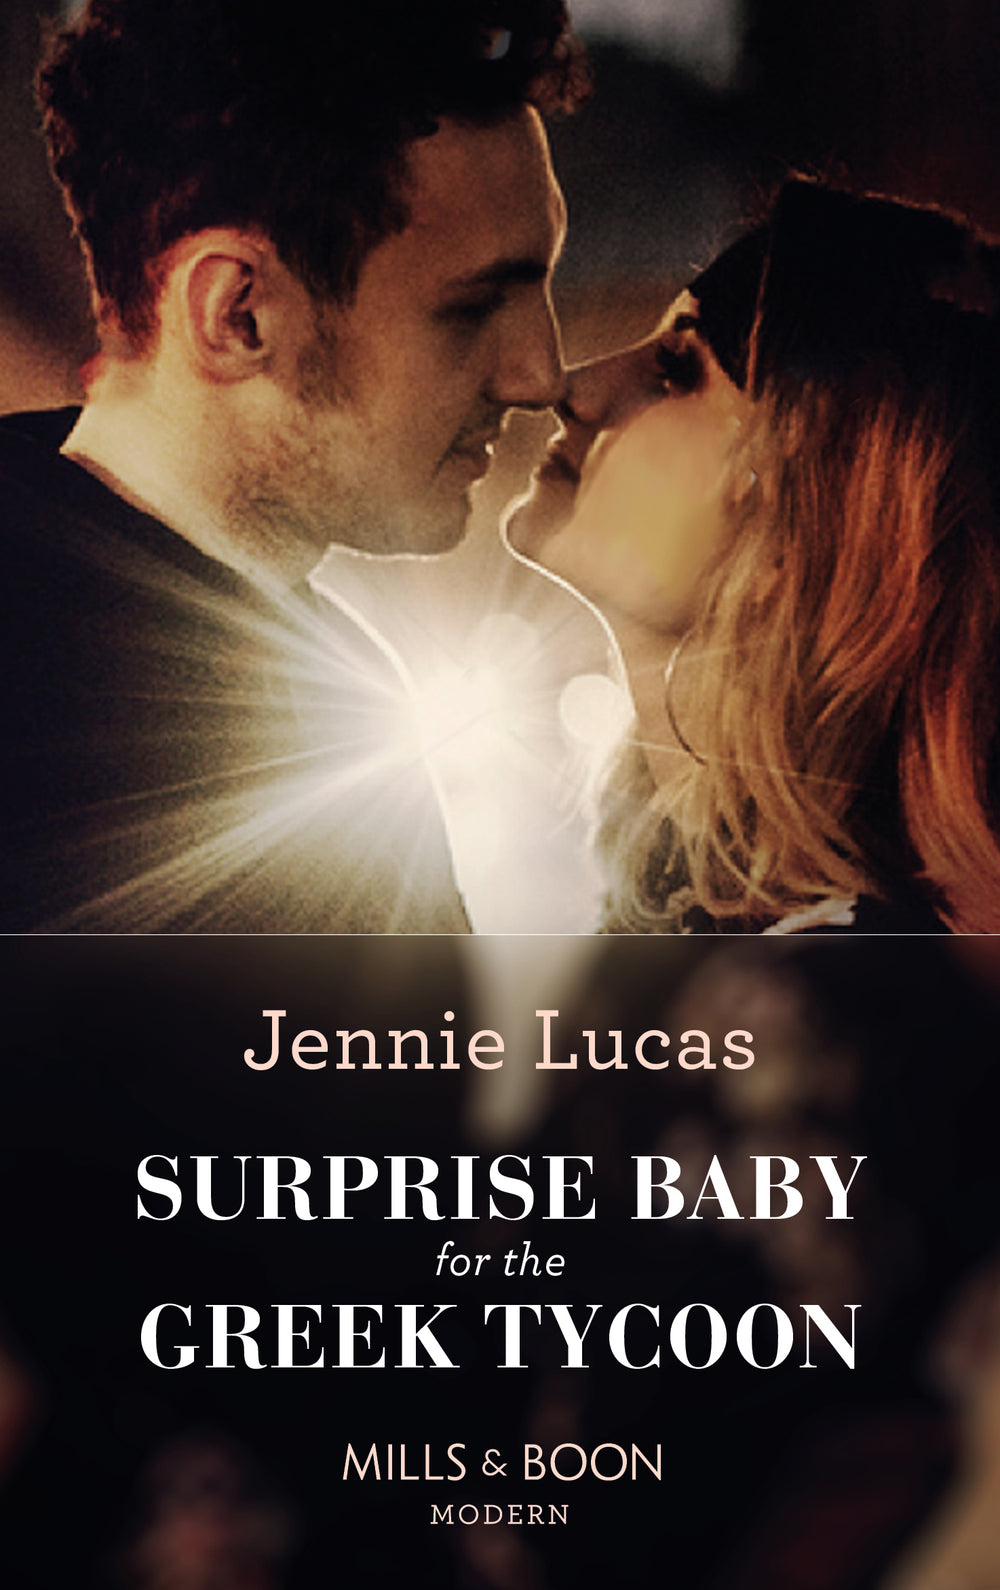 Surprise Baby for the Greek Tycoon - Chapter 9